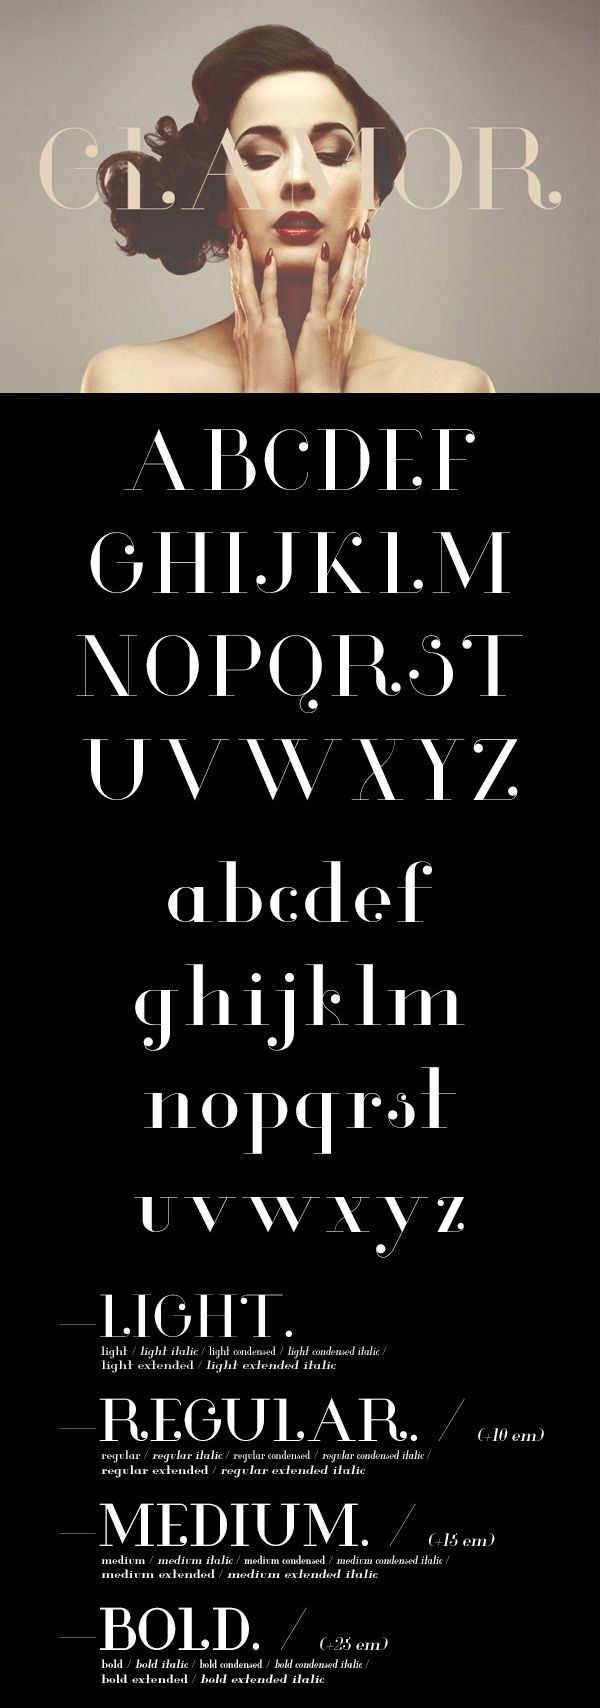 I dont really like this typeface but it fits the profile of Modern Serif well so i thought id post it